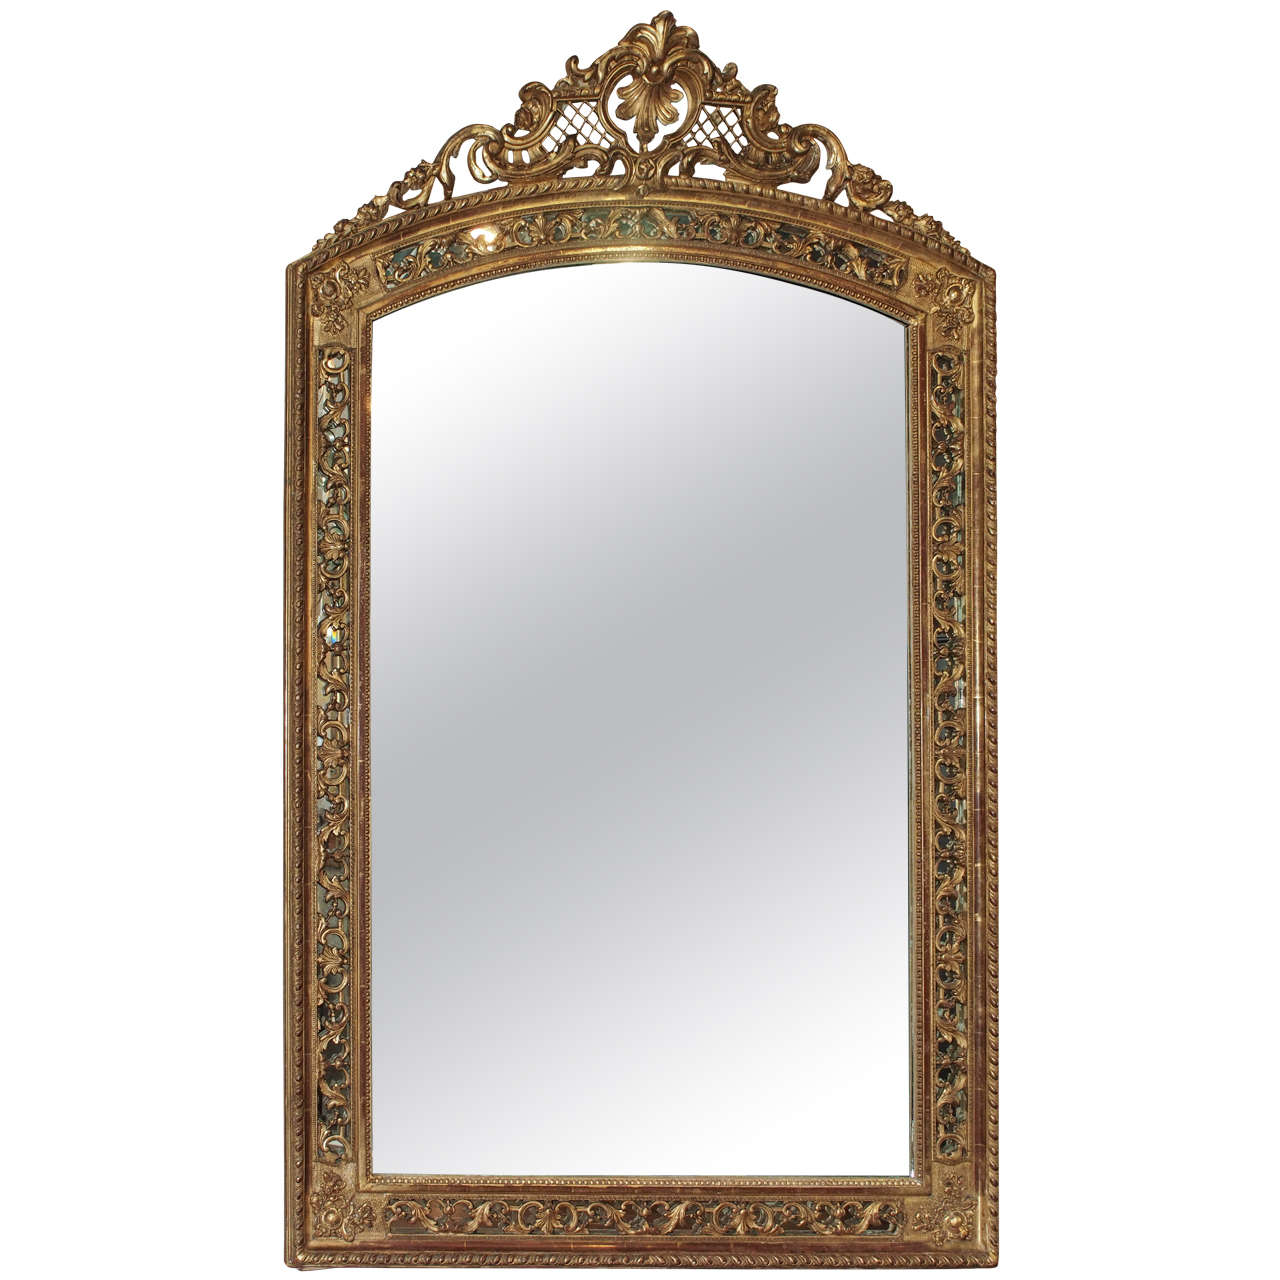 19th Century French Gold Leaf Mirror 1